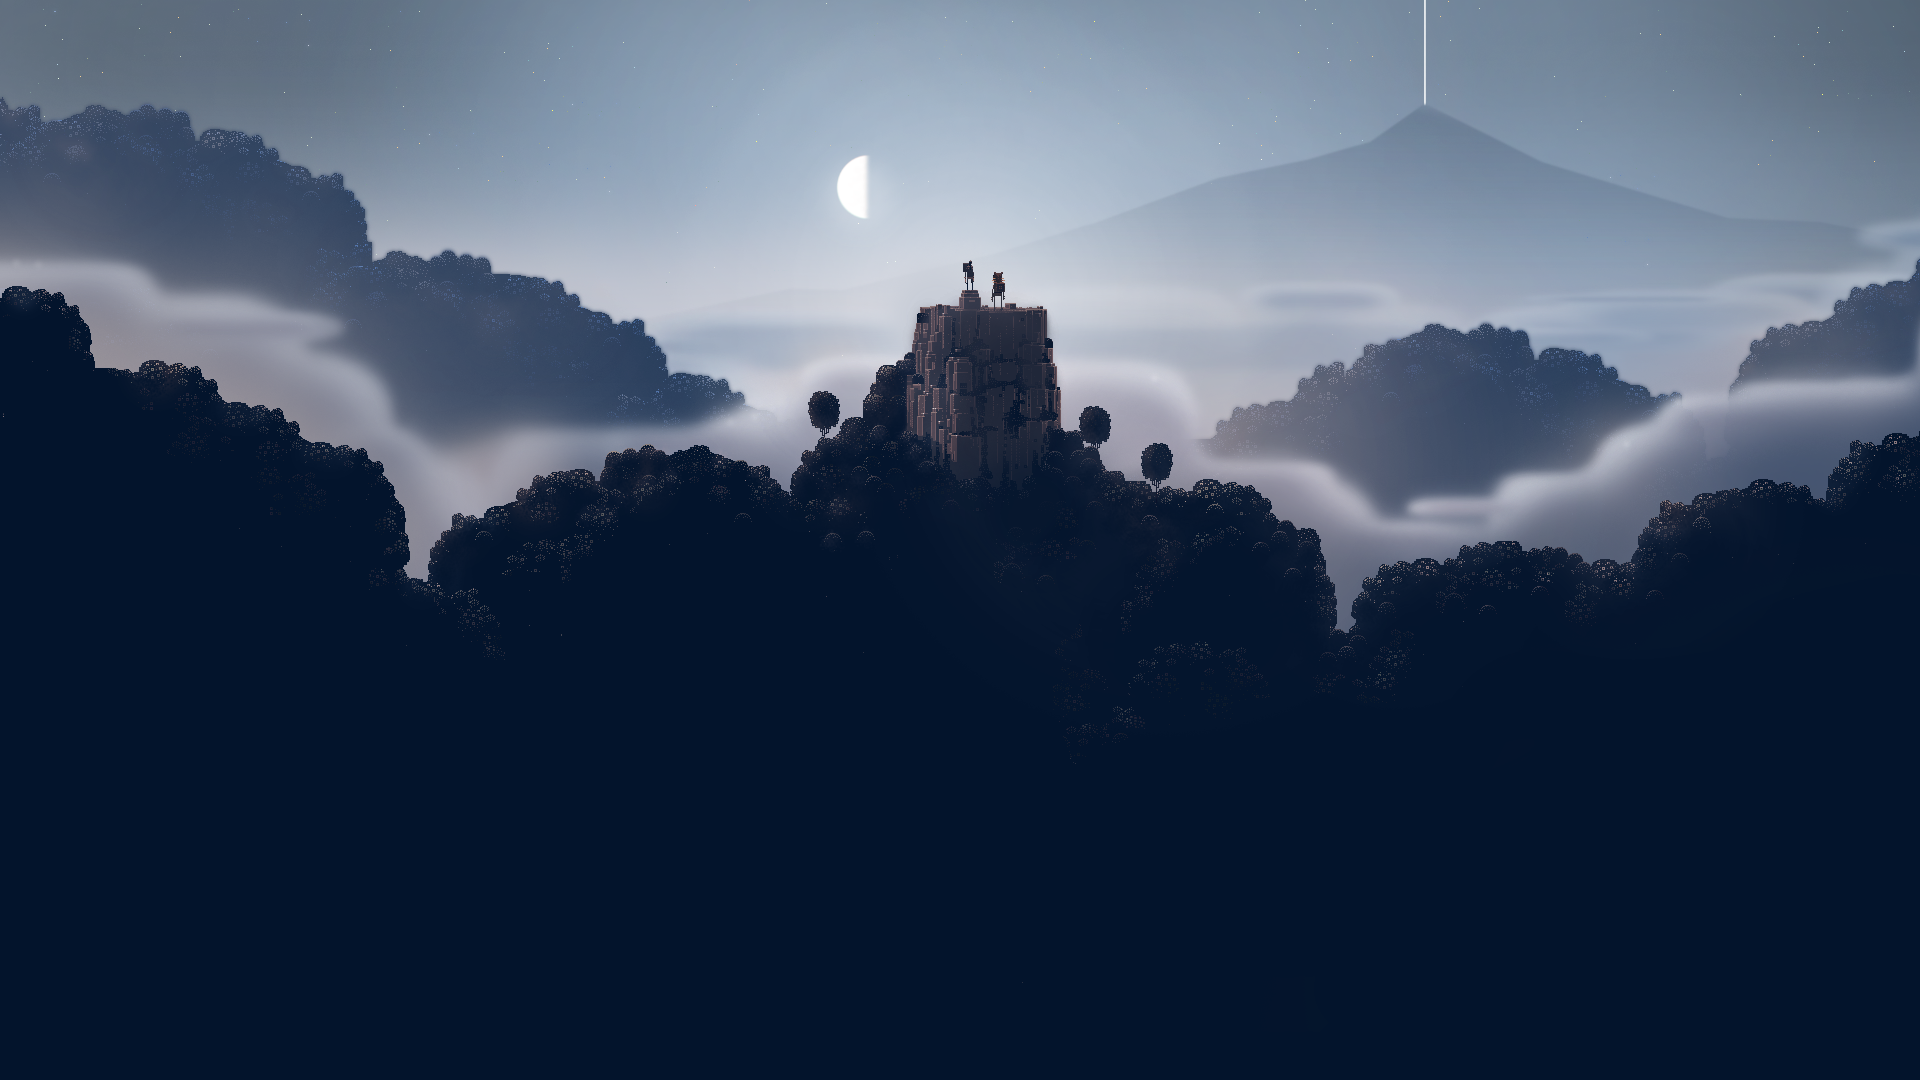 AdviceRecommendations for this wallpaper D Rainmeter 1920x1080